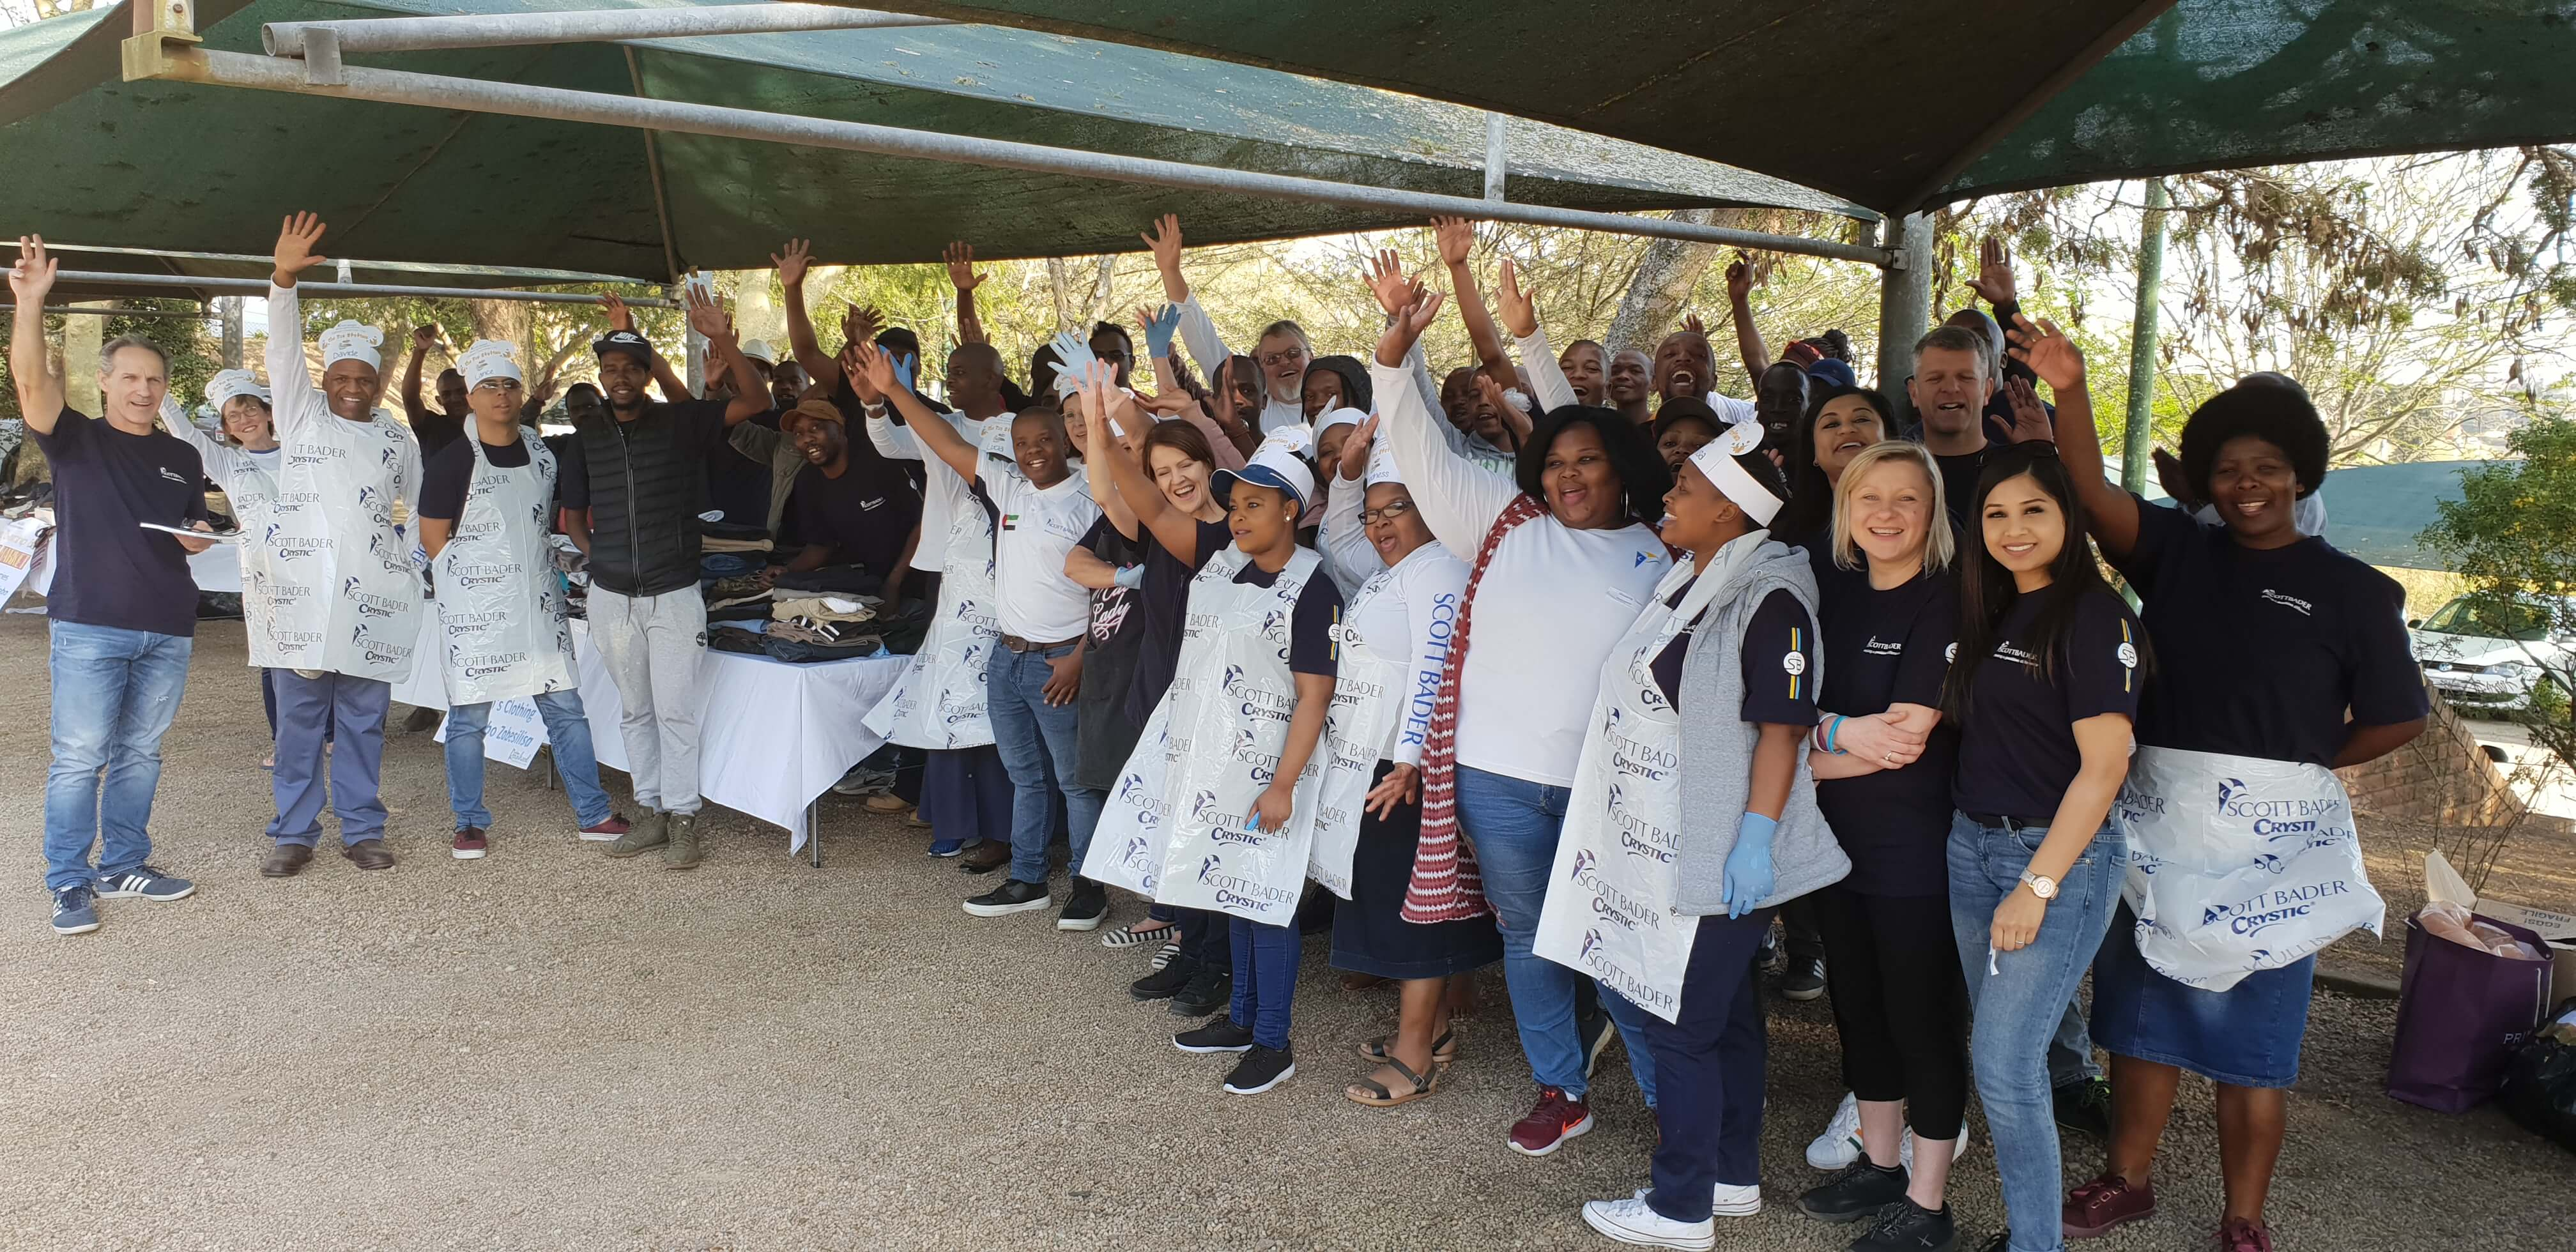 Scott Bader celebrate employee ownership with community days in North America and South Africa